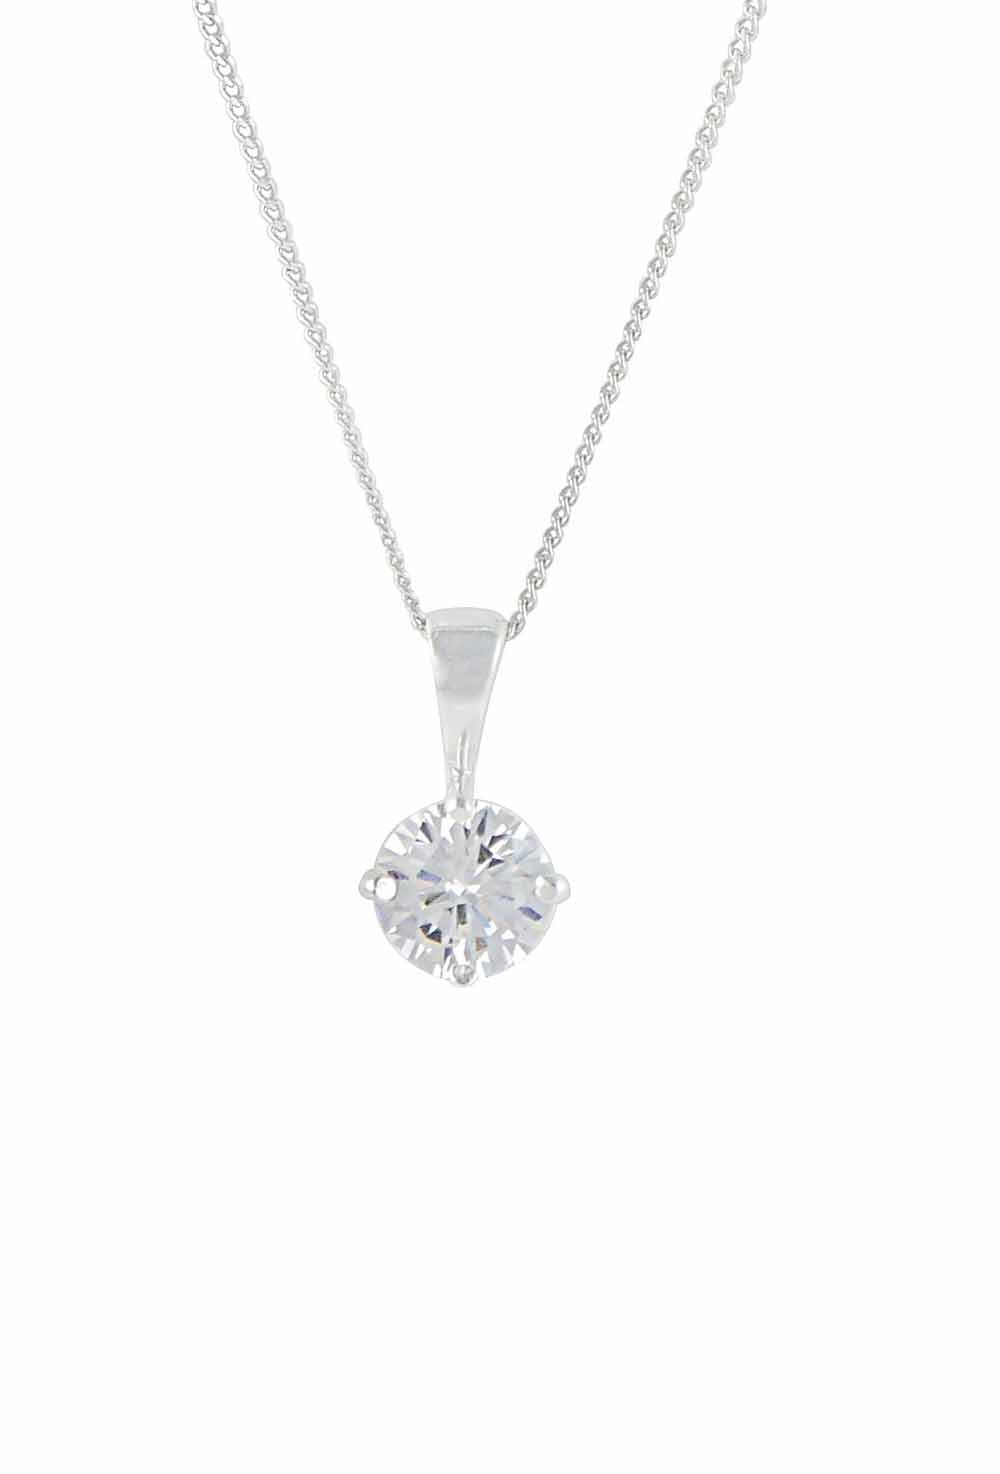 Cubic Zirconia Pendant Necklace The Opal